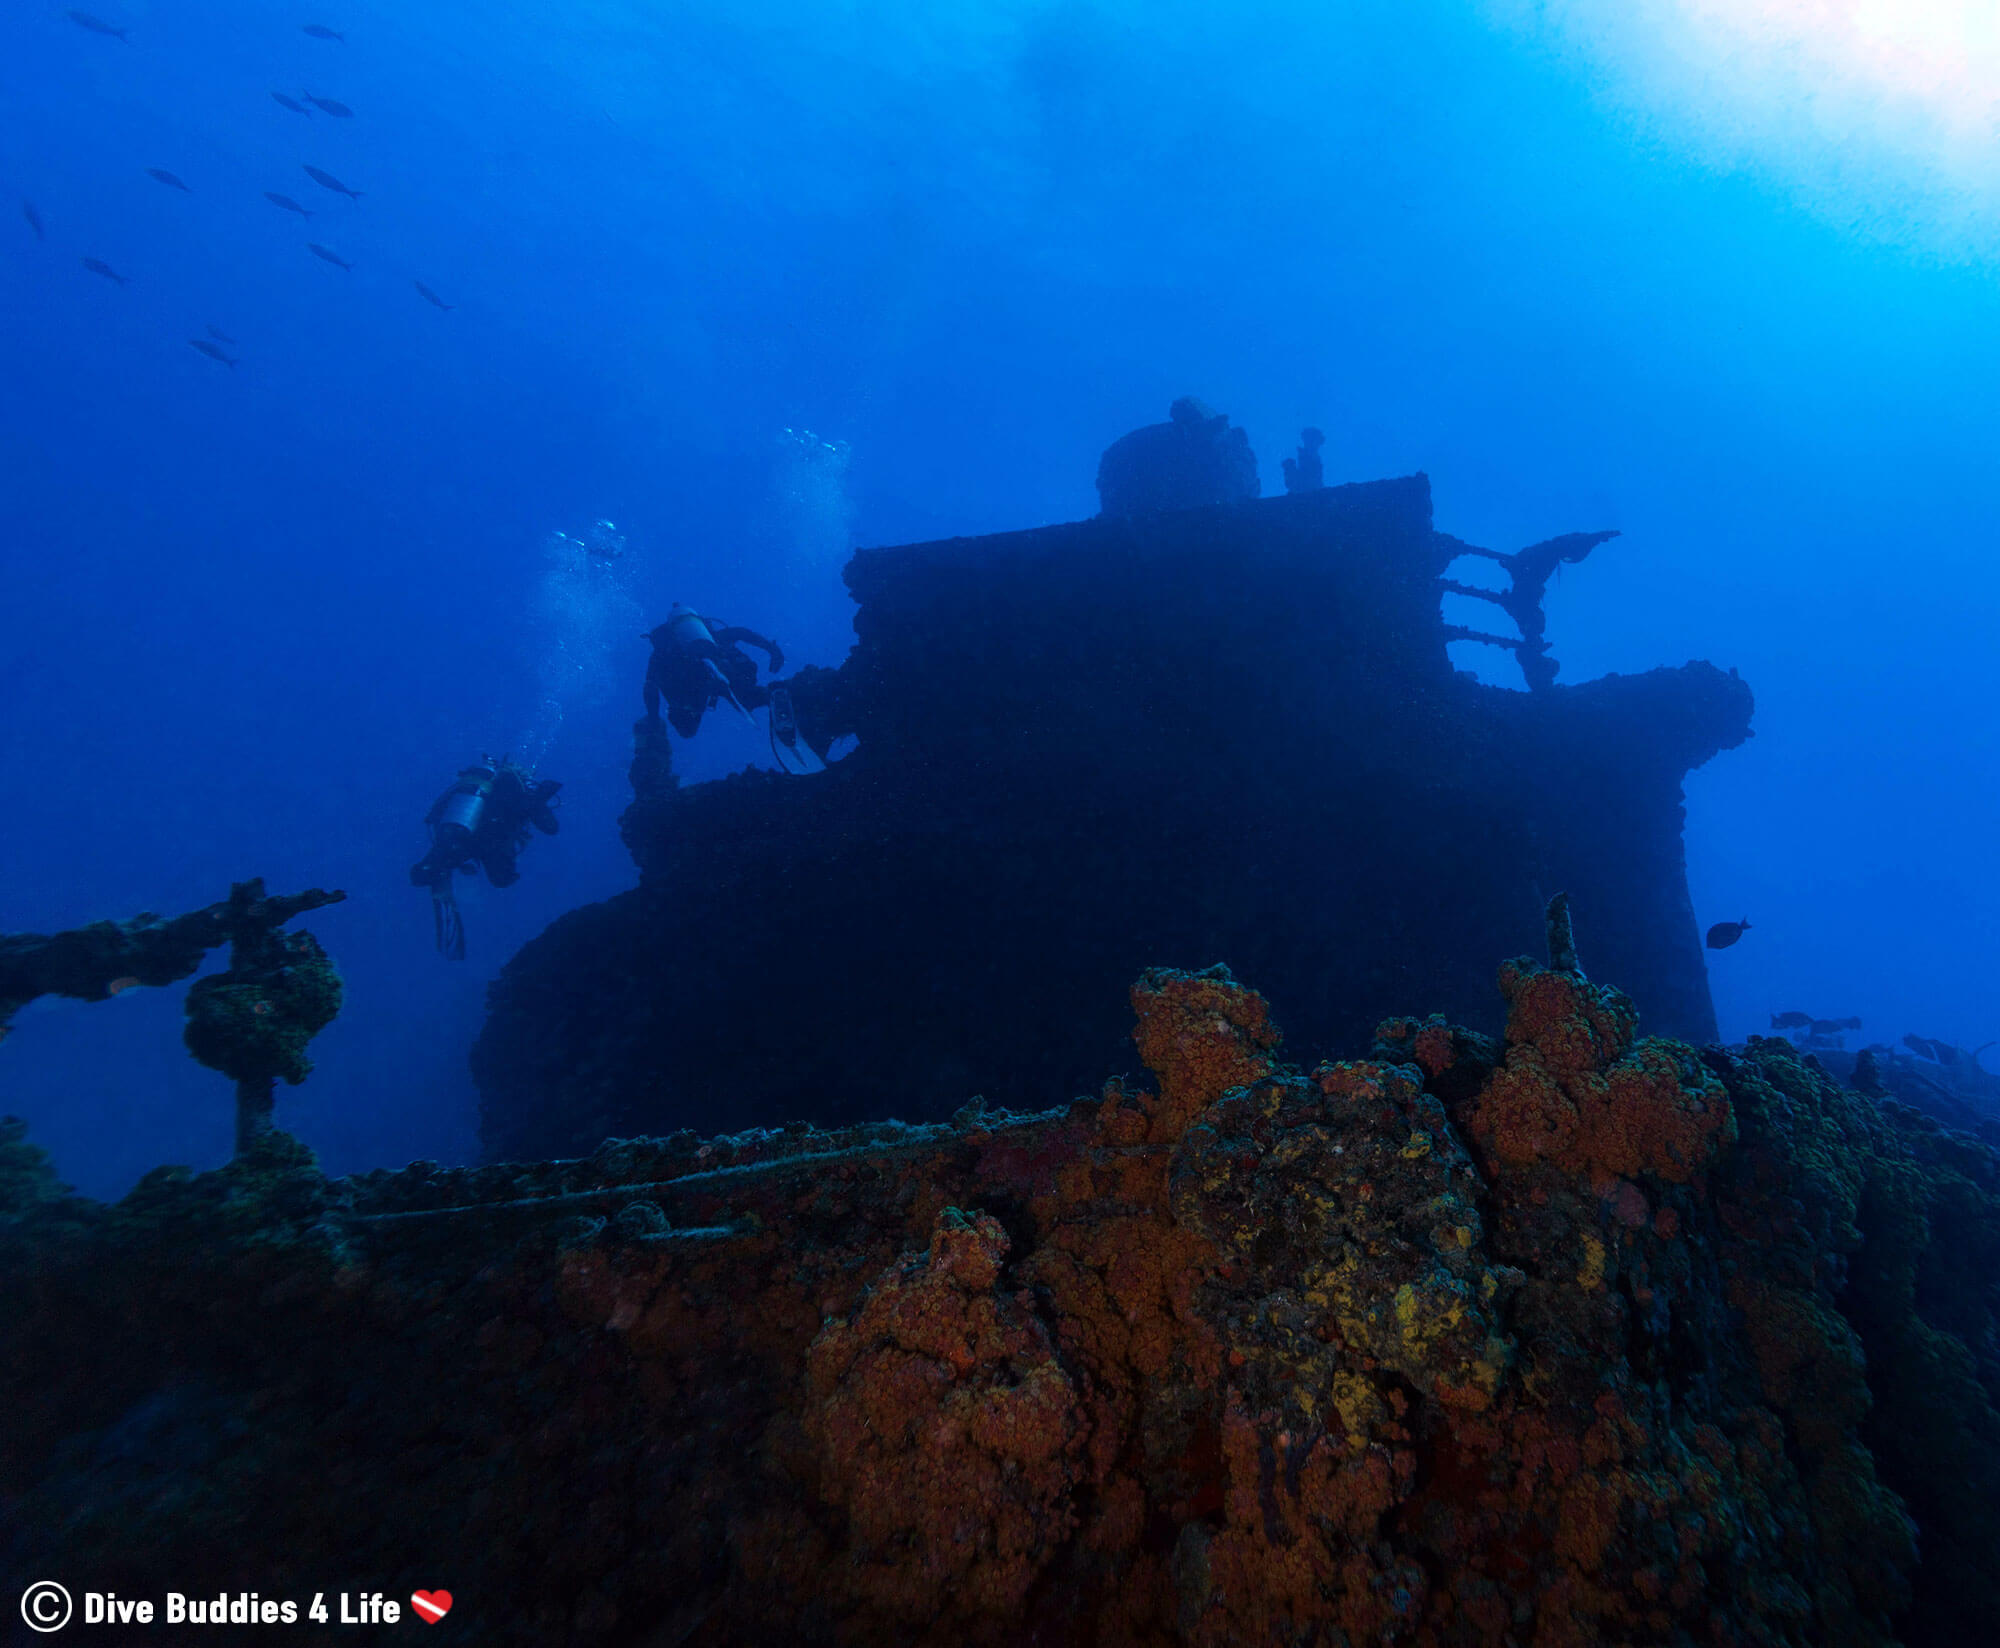 Two Scuba Divers Swimming Towards The Bow Of The Duane Shipwreck At The Bottom Of Key Largo, Florida Keys, USA